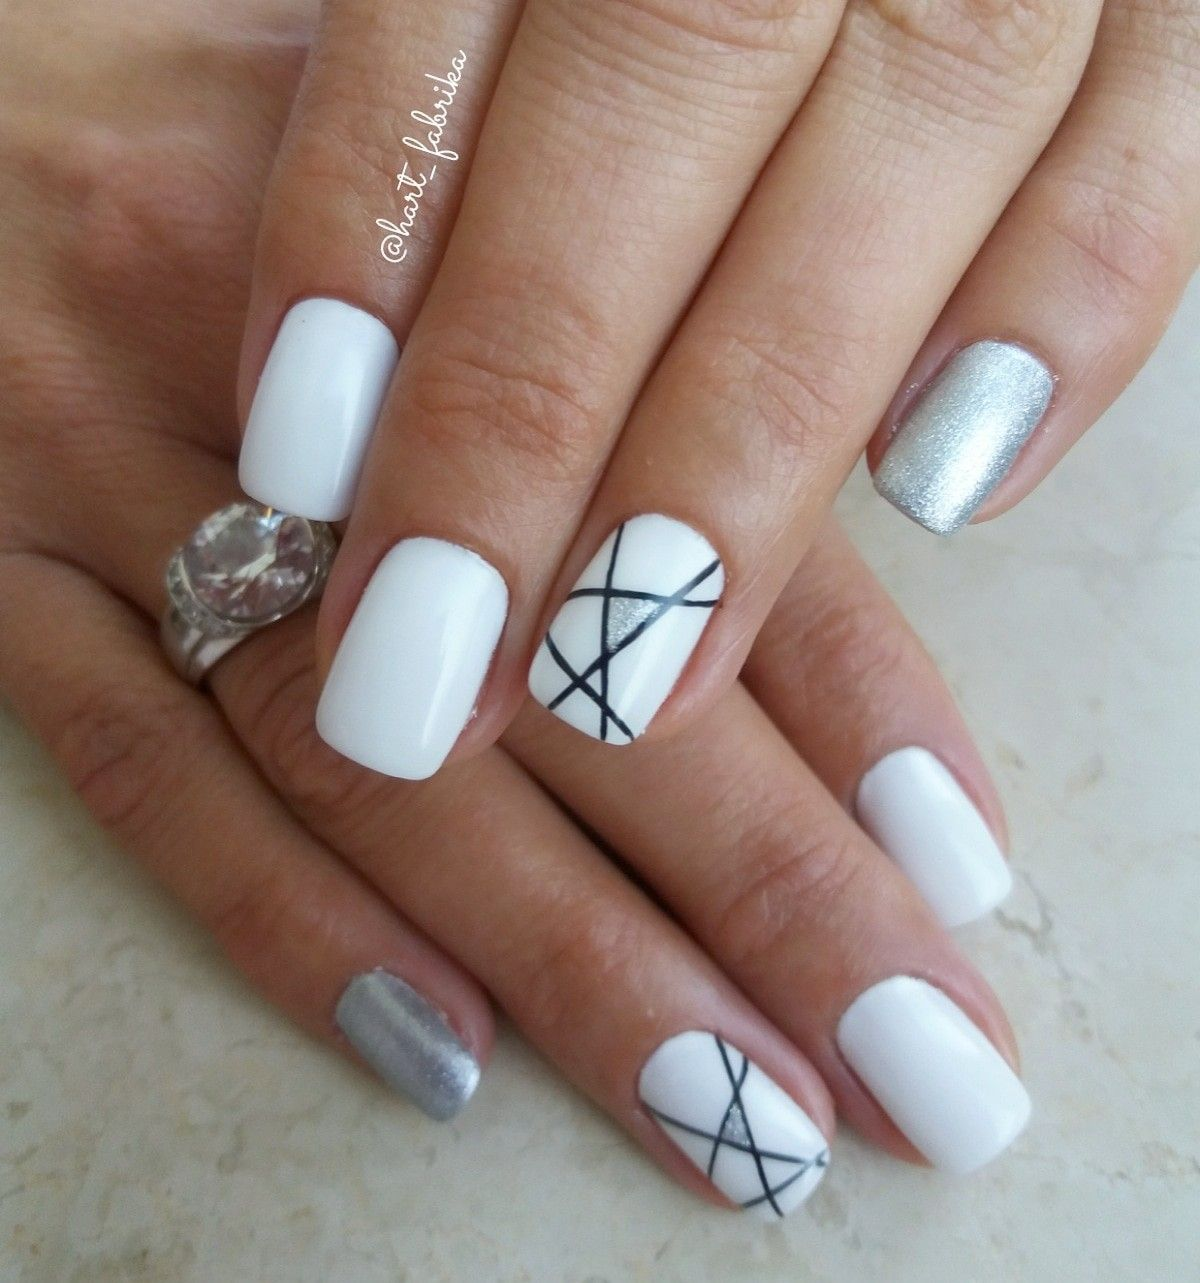 White Gel Nails With Silver And Black Details Black Gel Nails White Gel Nails Black Nail Designs